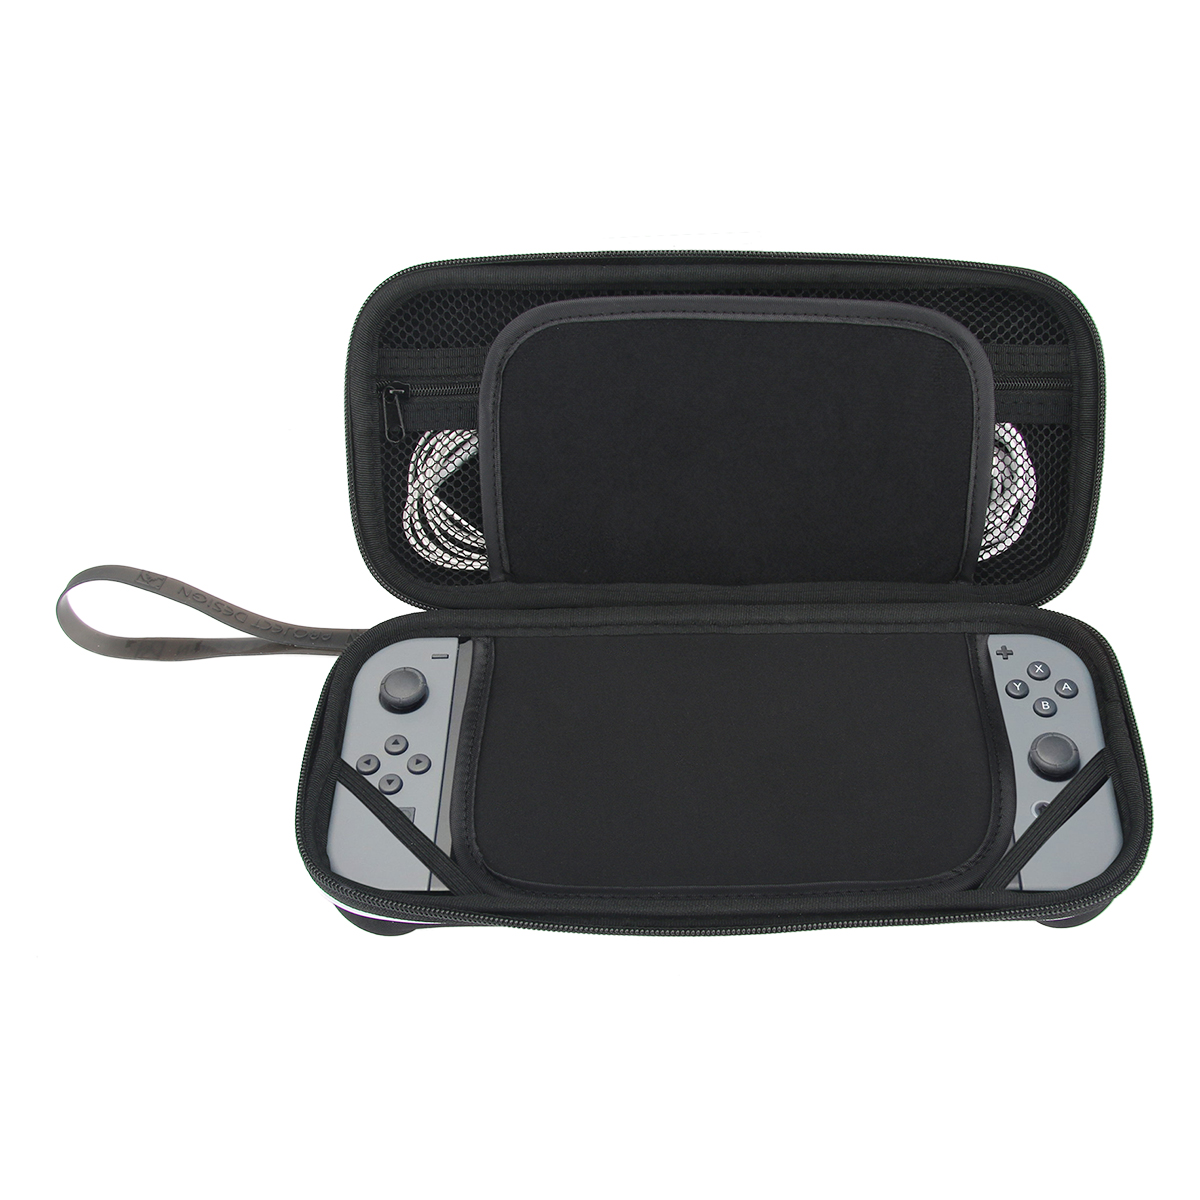 For Nintendo Switch Travel Carrying Case Game Console Zip Bag Protective Pouch with 8 Game Card Holder (Black)